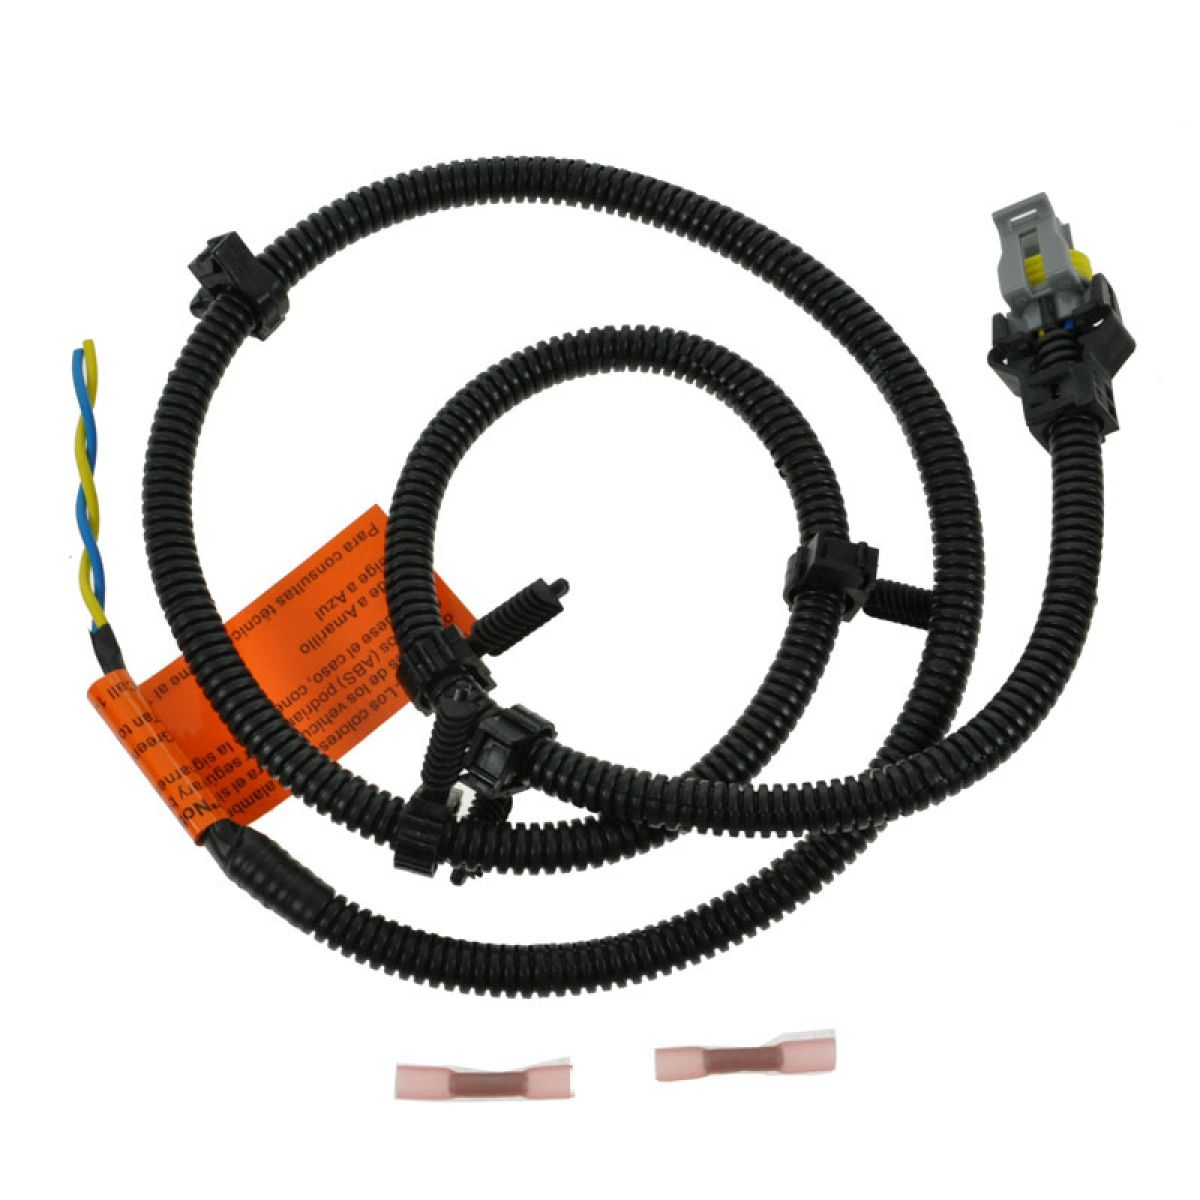 dorman speed sensor harness with plug pigtail abs wire wheel side rh ebay com Trailer Wiring with ABS Trailer Wiring with ABS